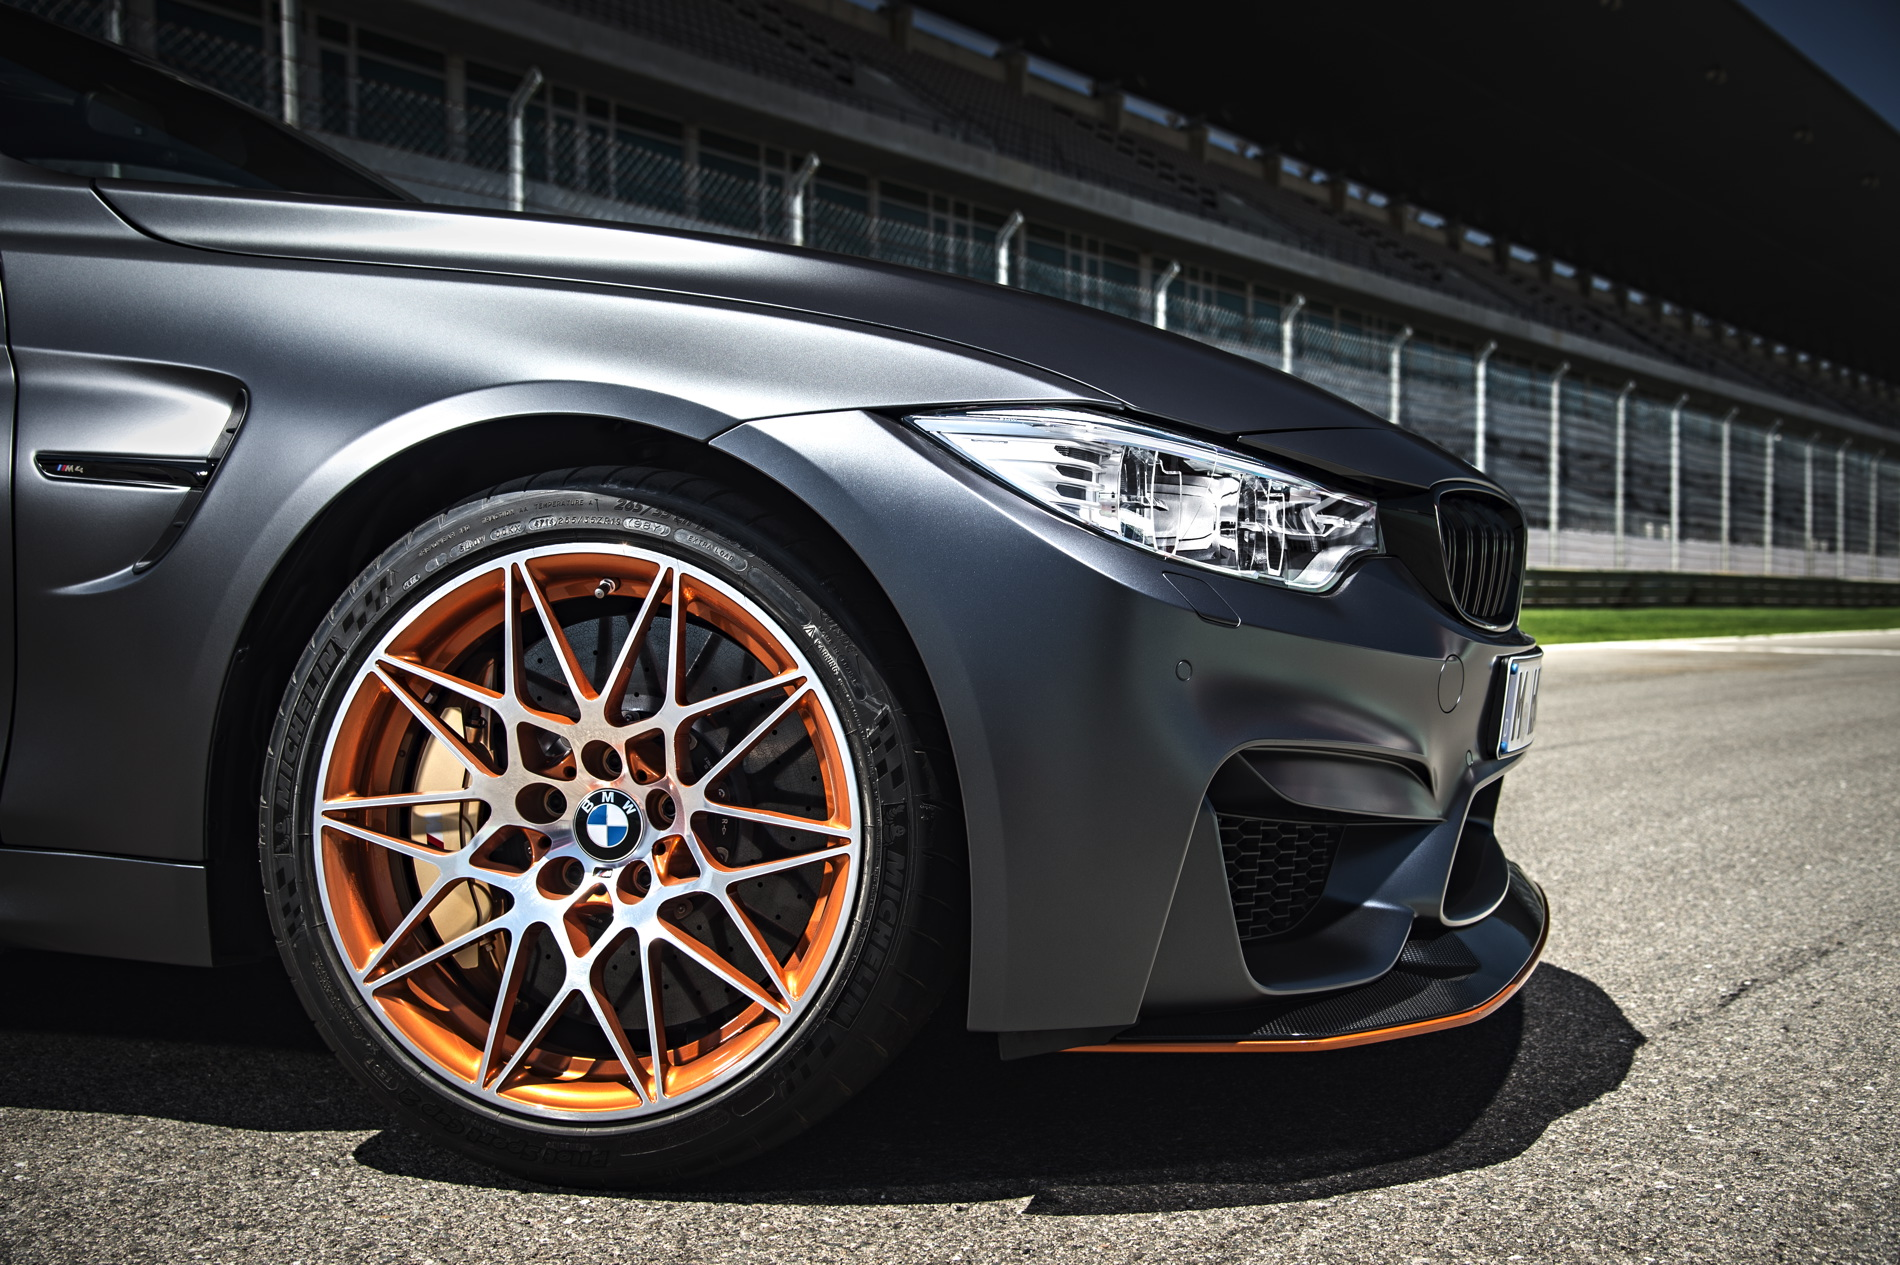 2016 Bmw M4 Gts Images 1900x1200 Wallpaper 47